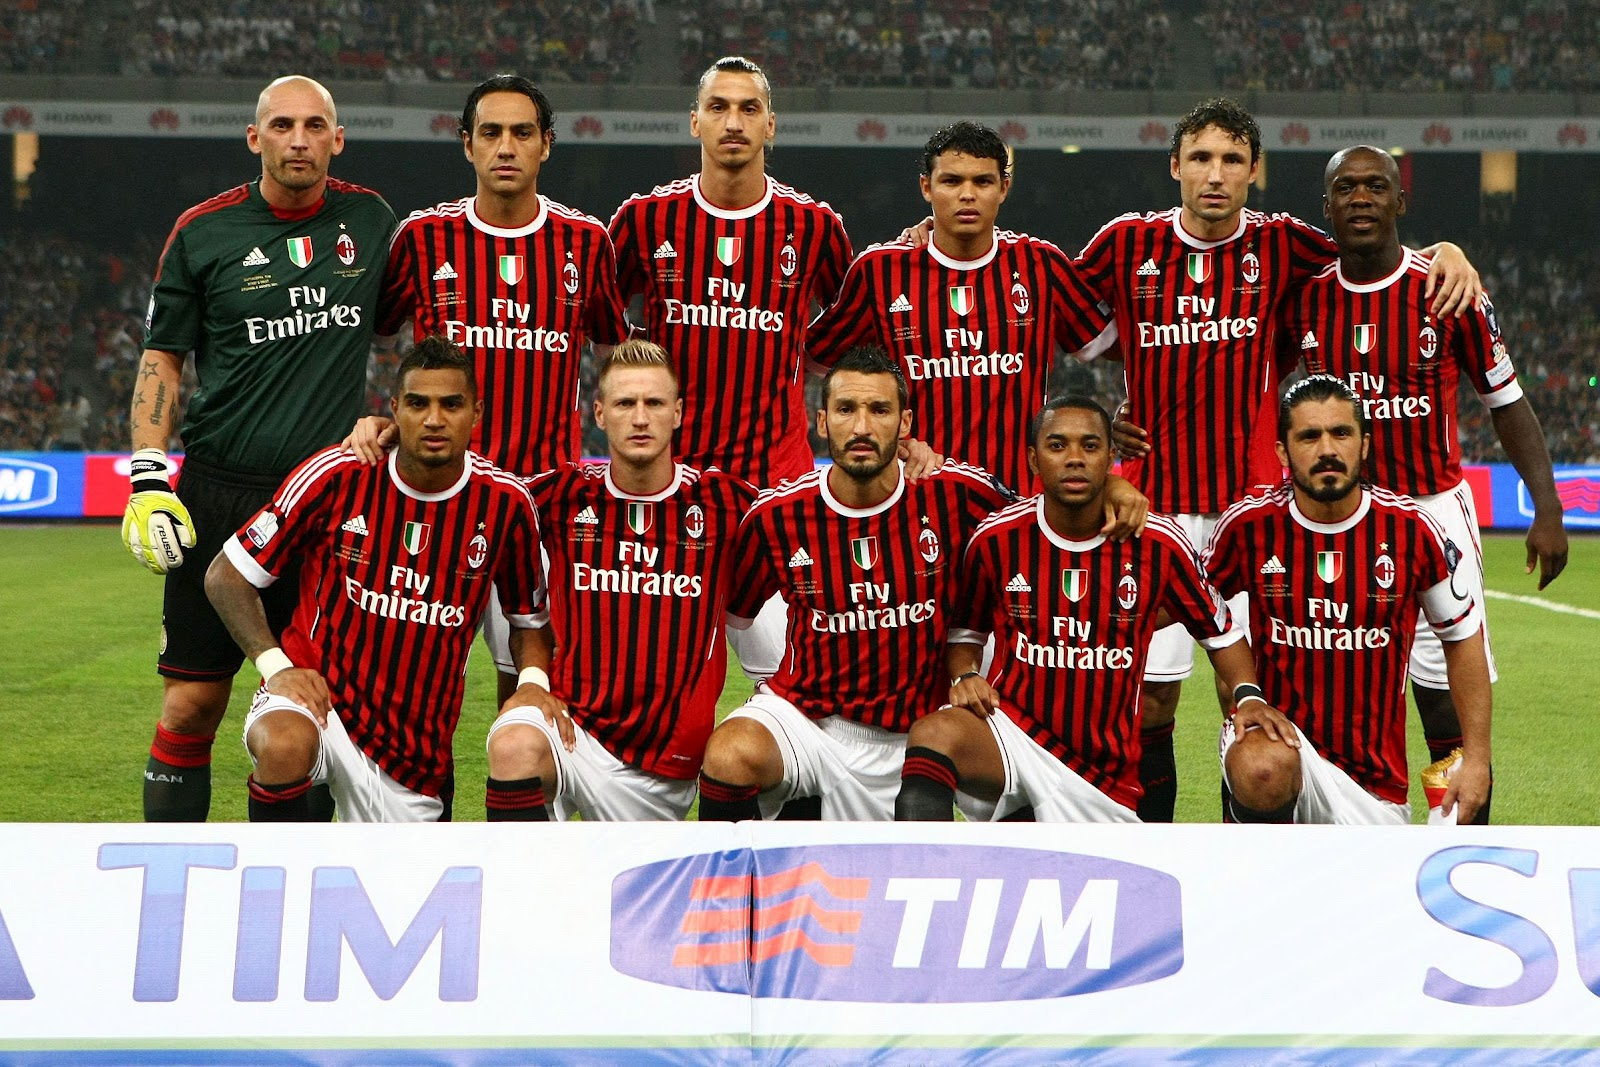 Chievo-Milan Preview: On a Wing and a Prayer